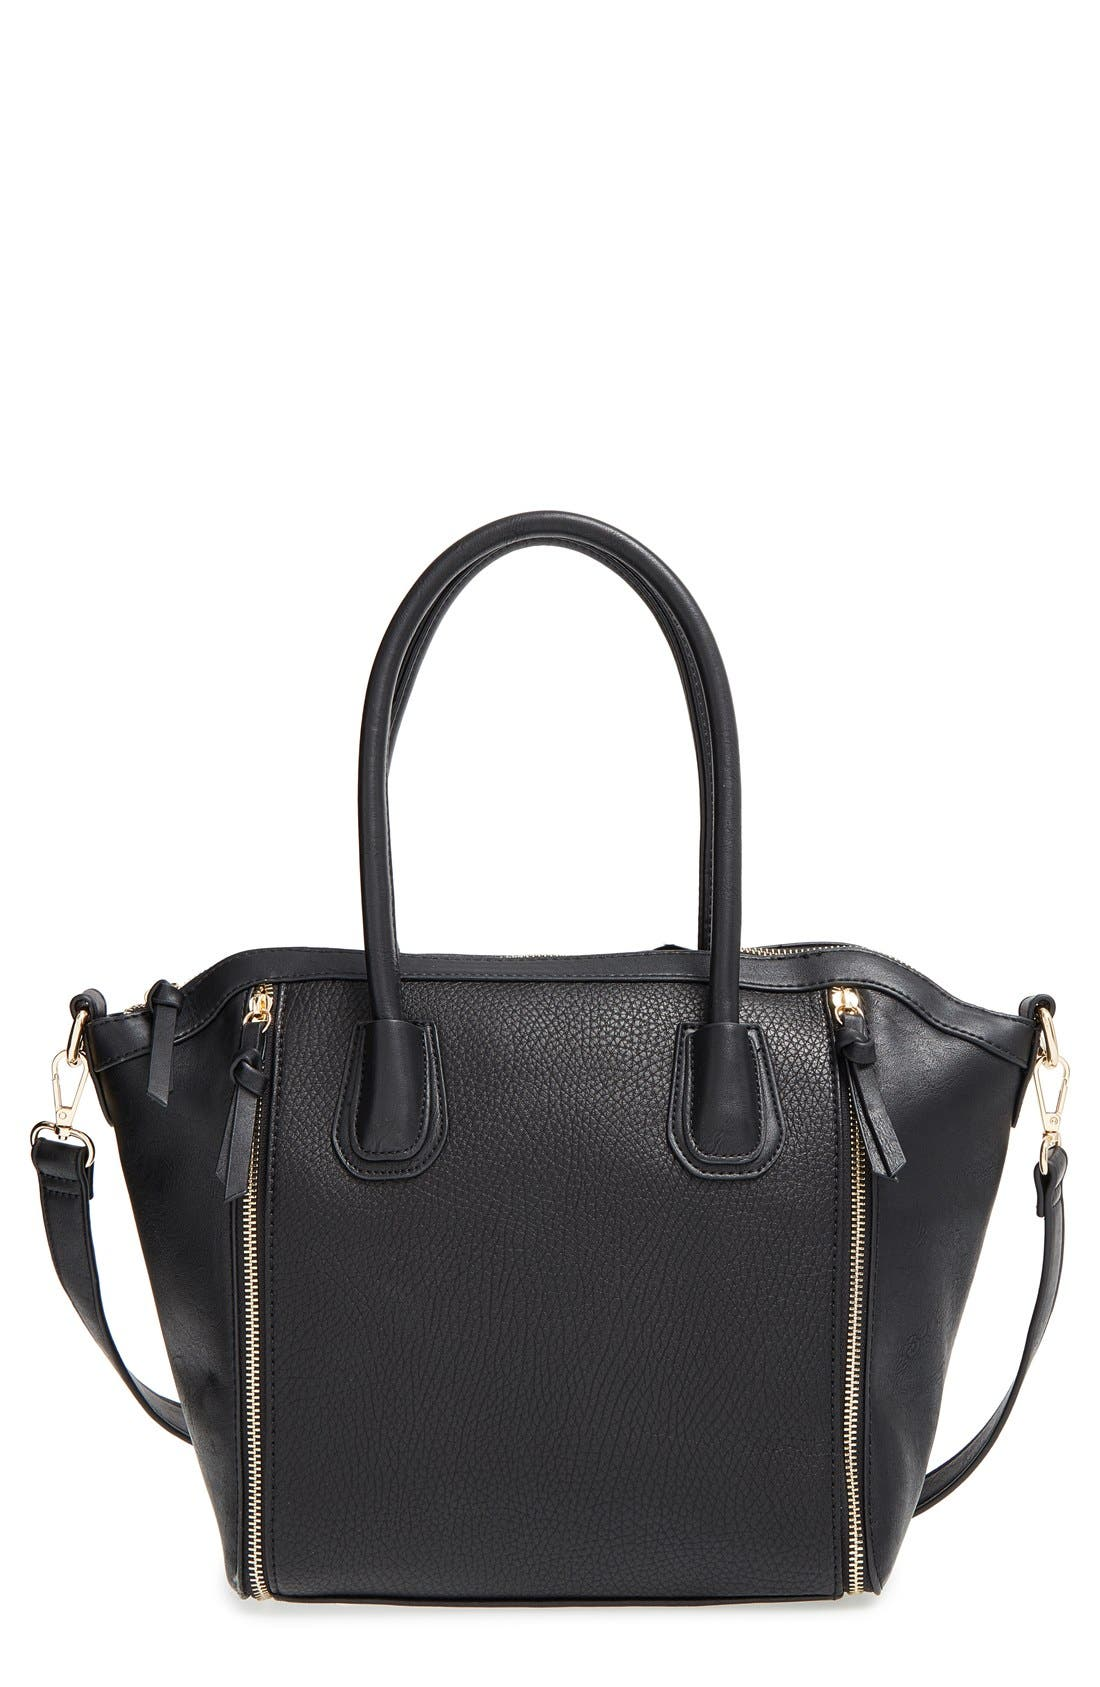 Alternate Image 1 Selected - Sole Society 'Kaylen' Faux Leather Crossbody Satchel